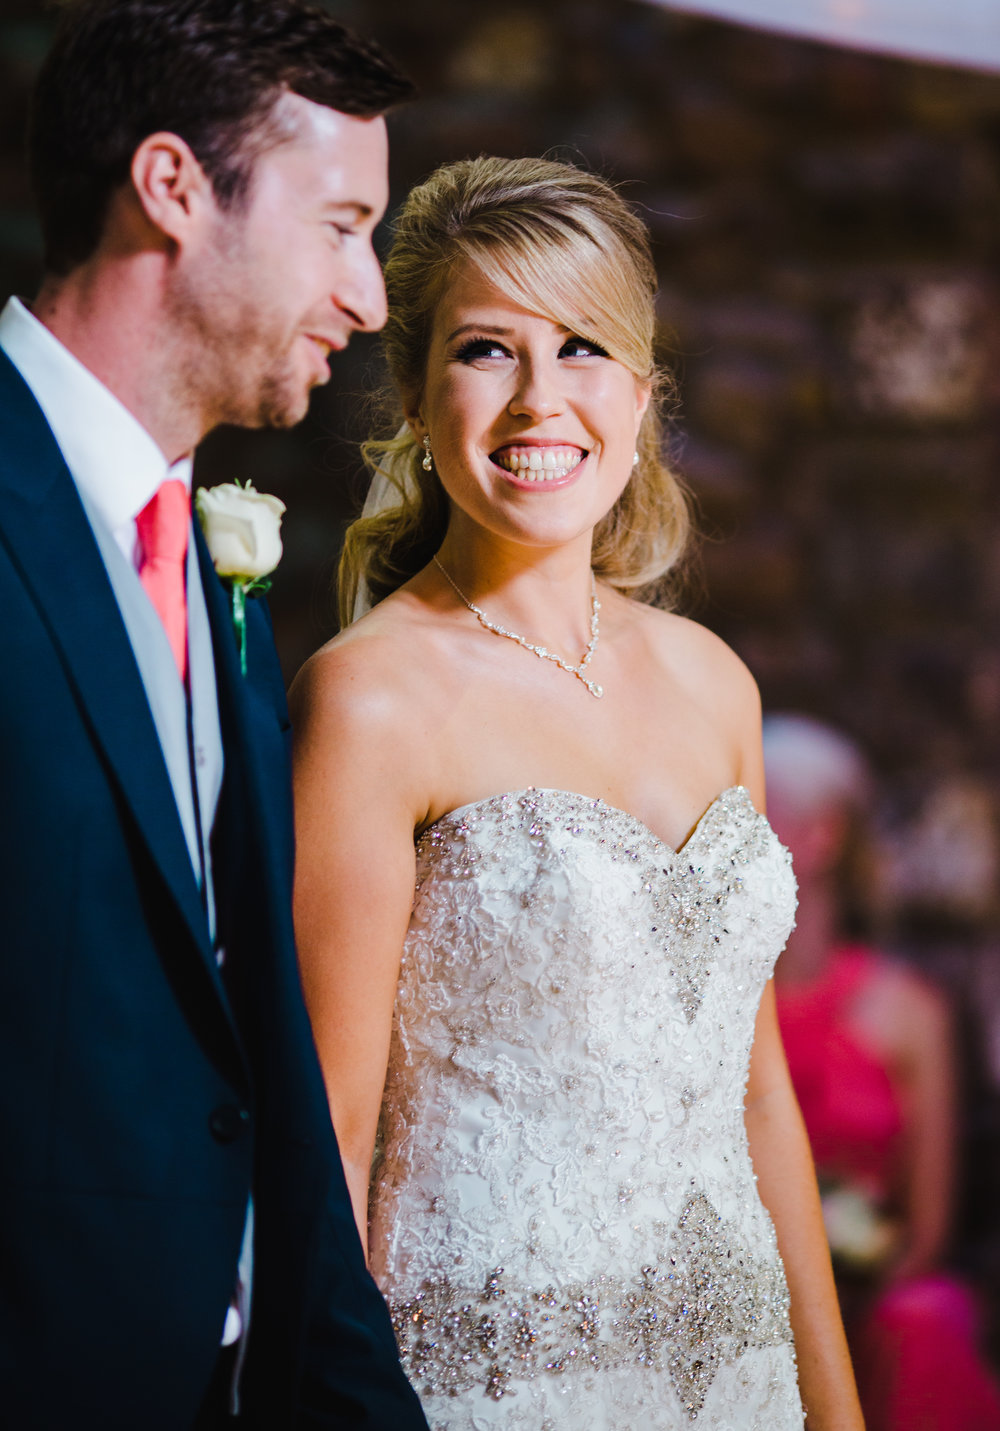 the bride smiling at her soon to be husband- Wedding photographer lancashire